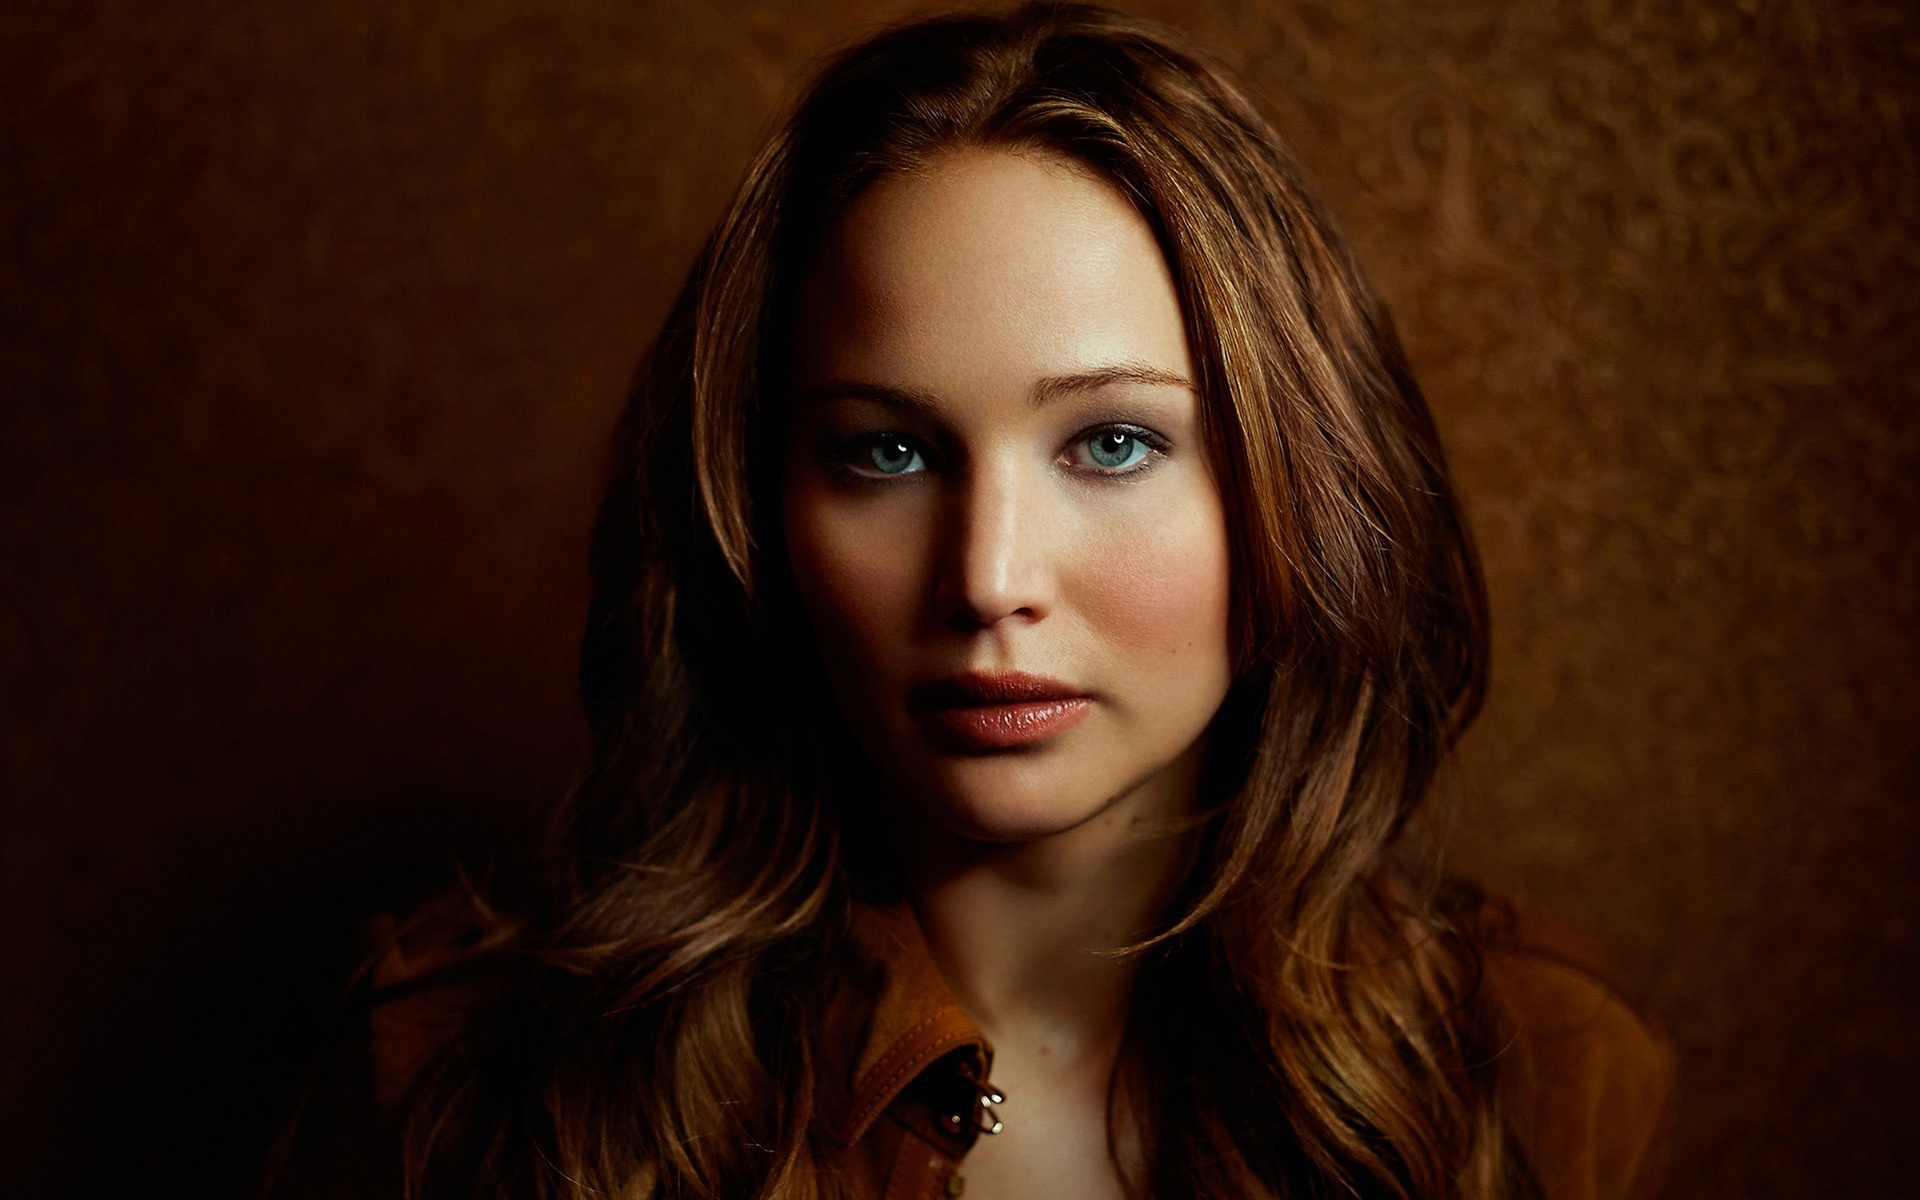 Jennifer Lawrence Wallpapers in jpg format for free